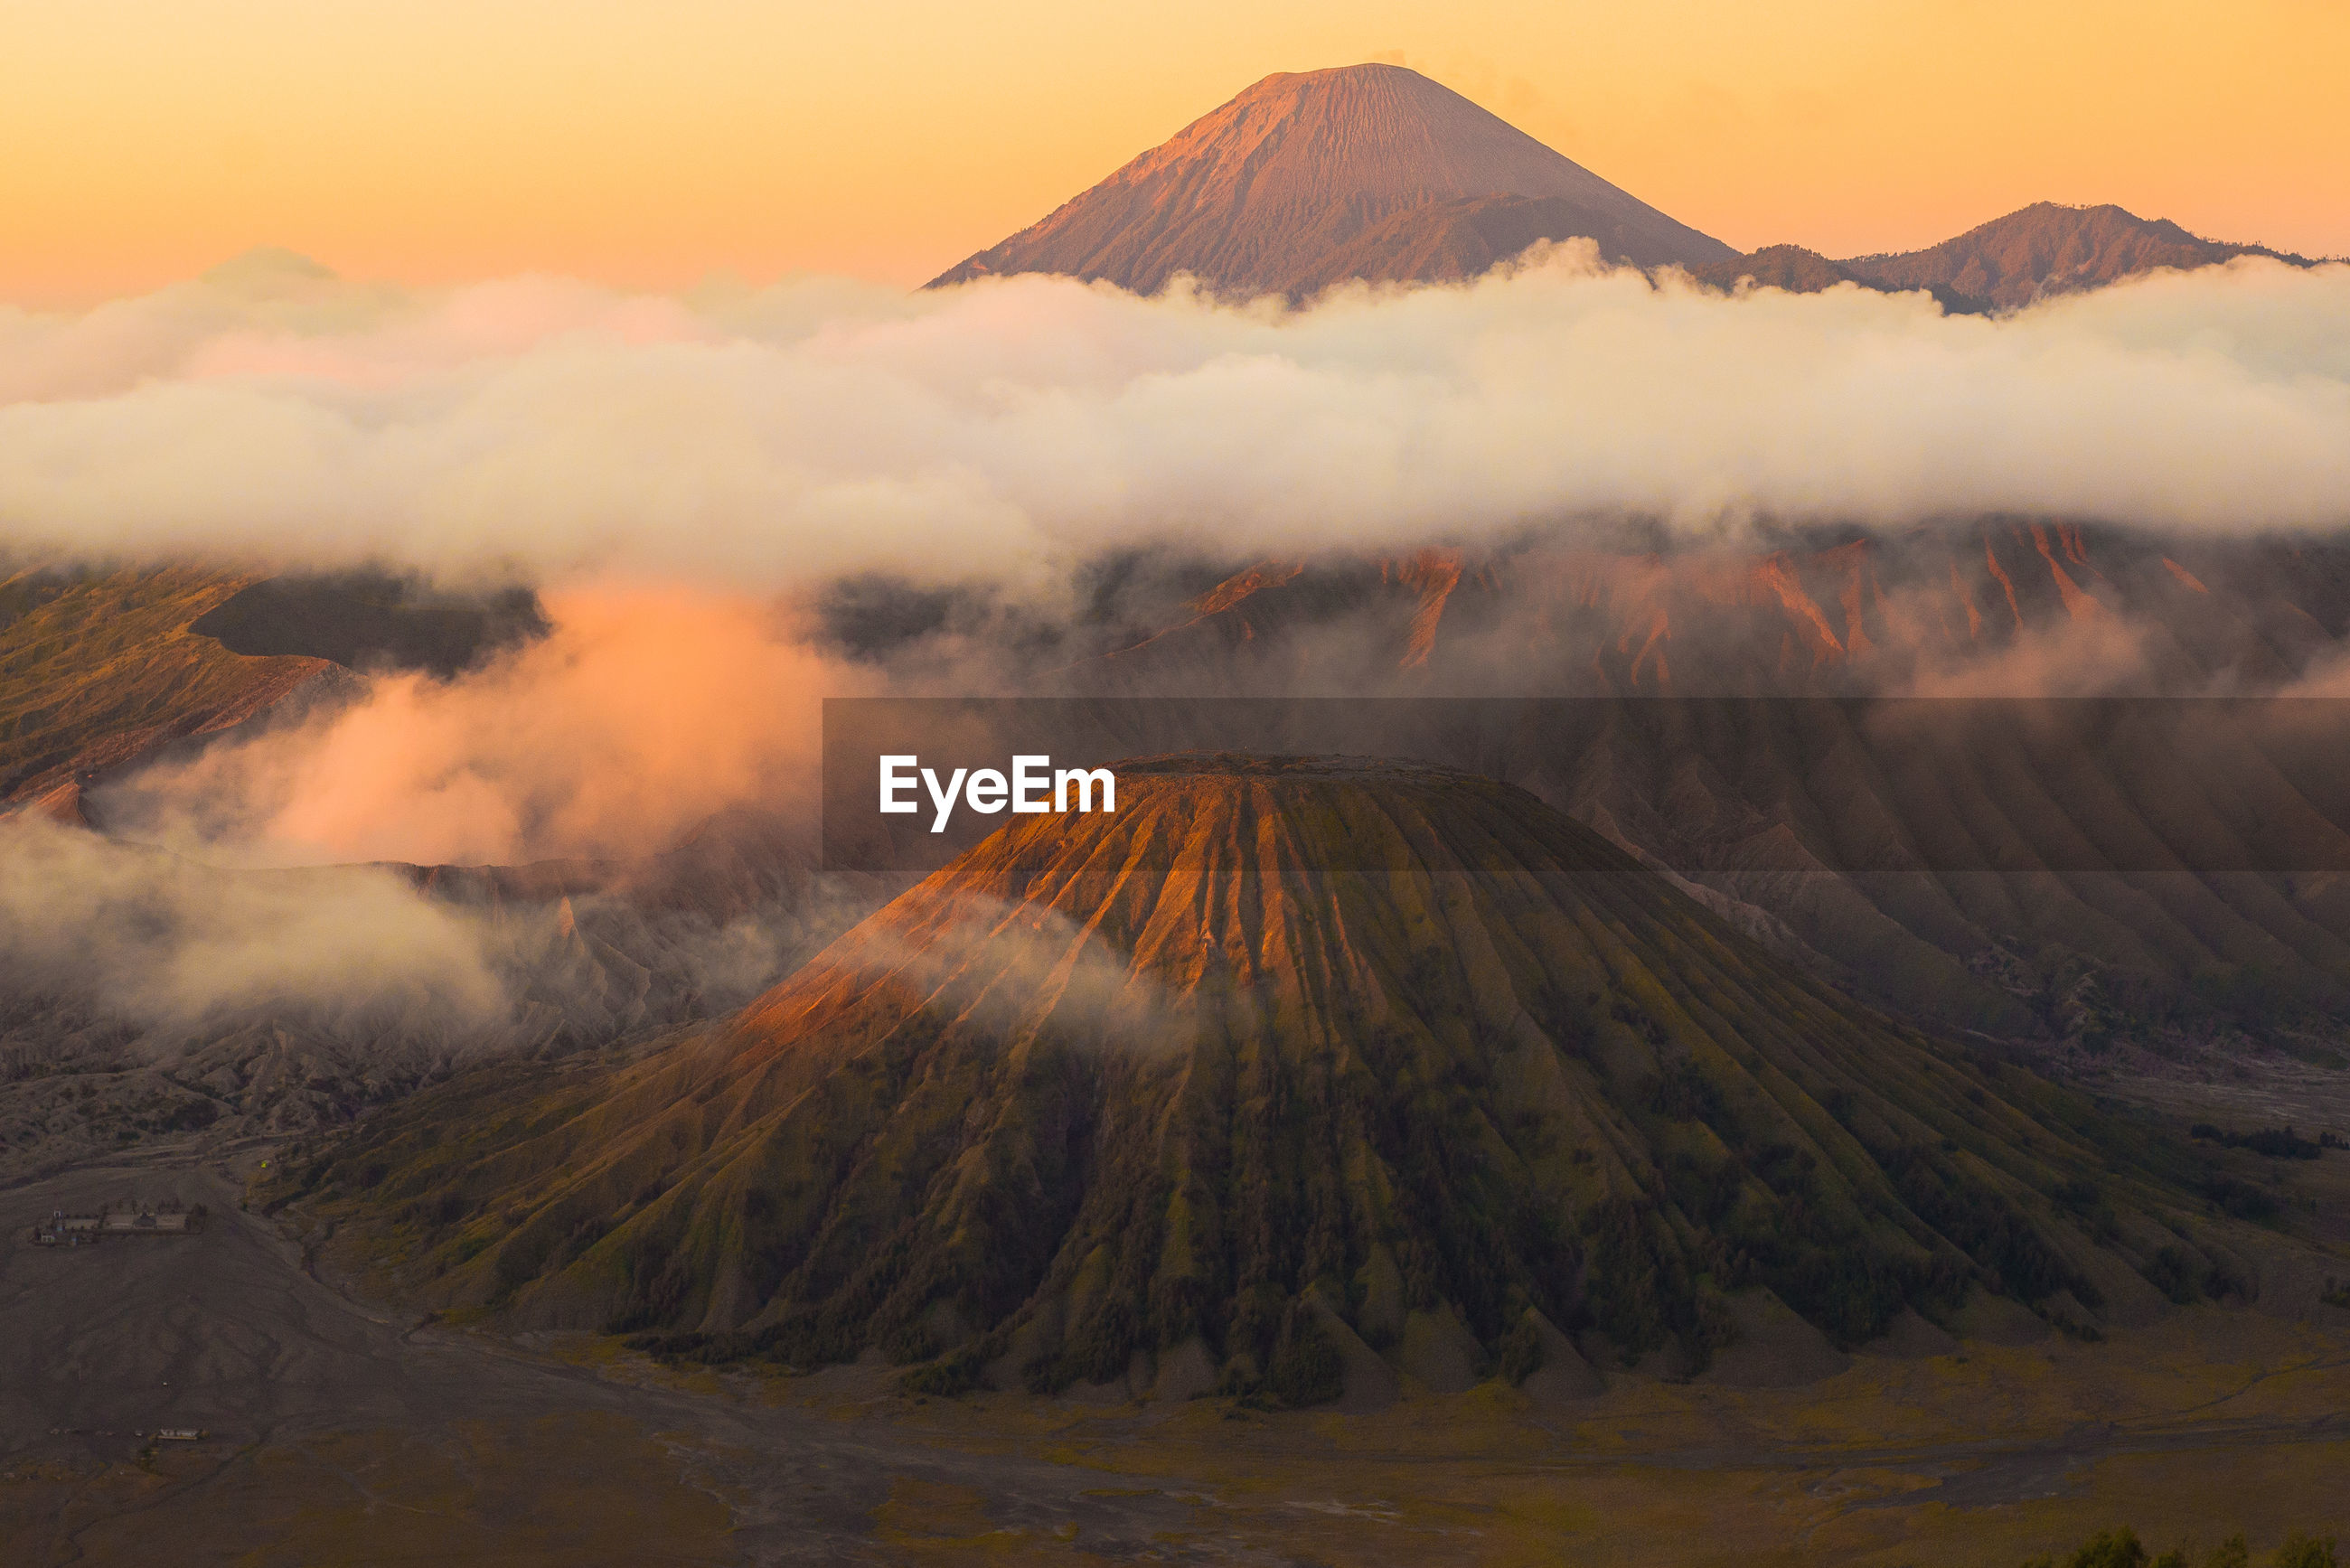 Scenic view of clouds over mt bromo during sunset